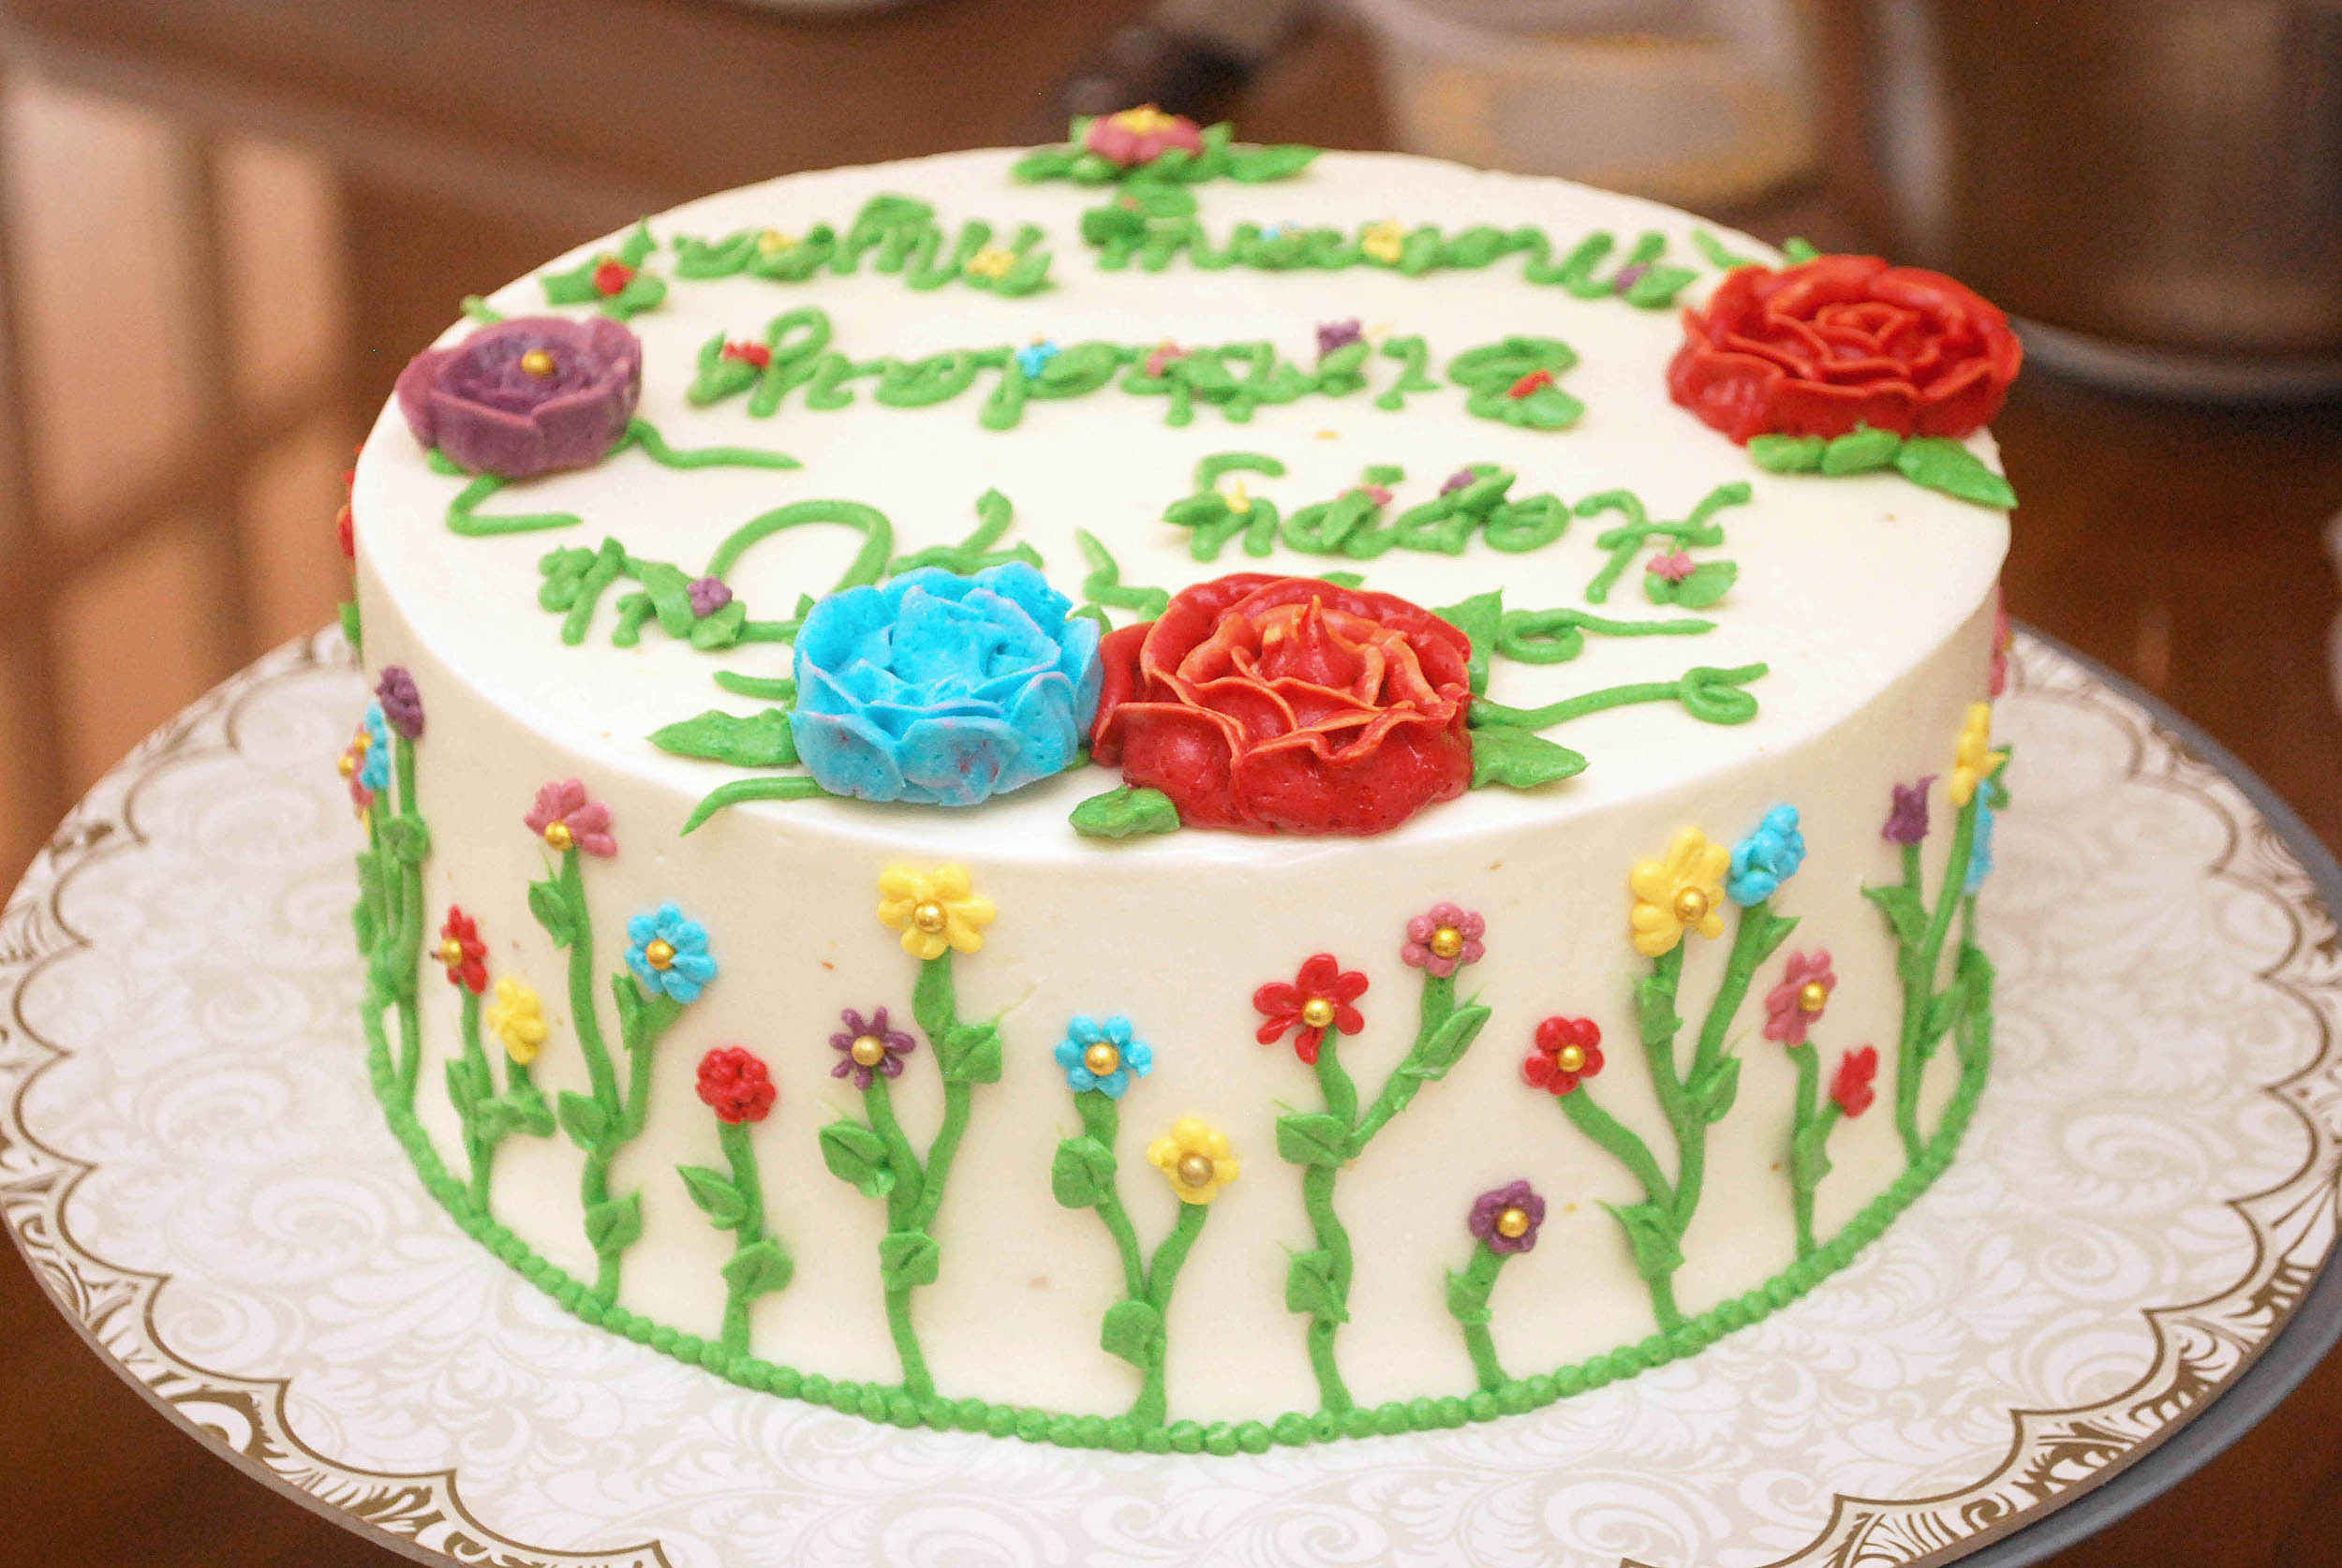 Cake Decorating Ideas For Birthday  How to Decorate Birthday Cakes wikiHow